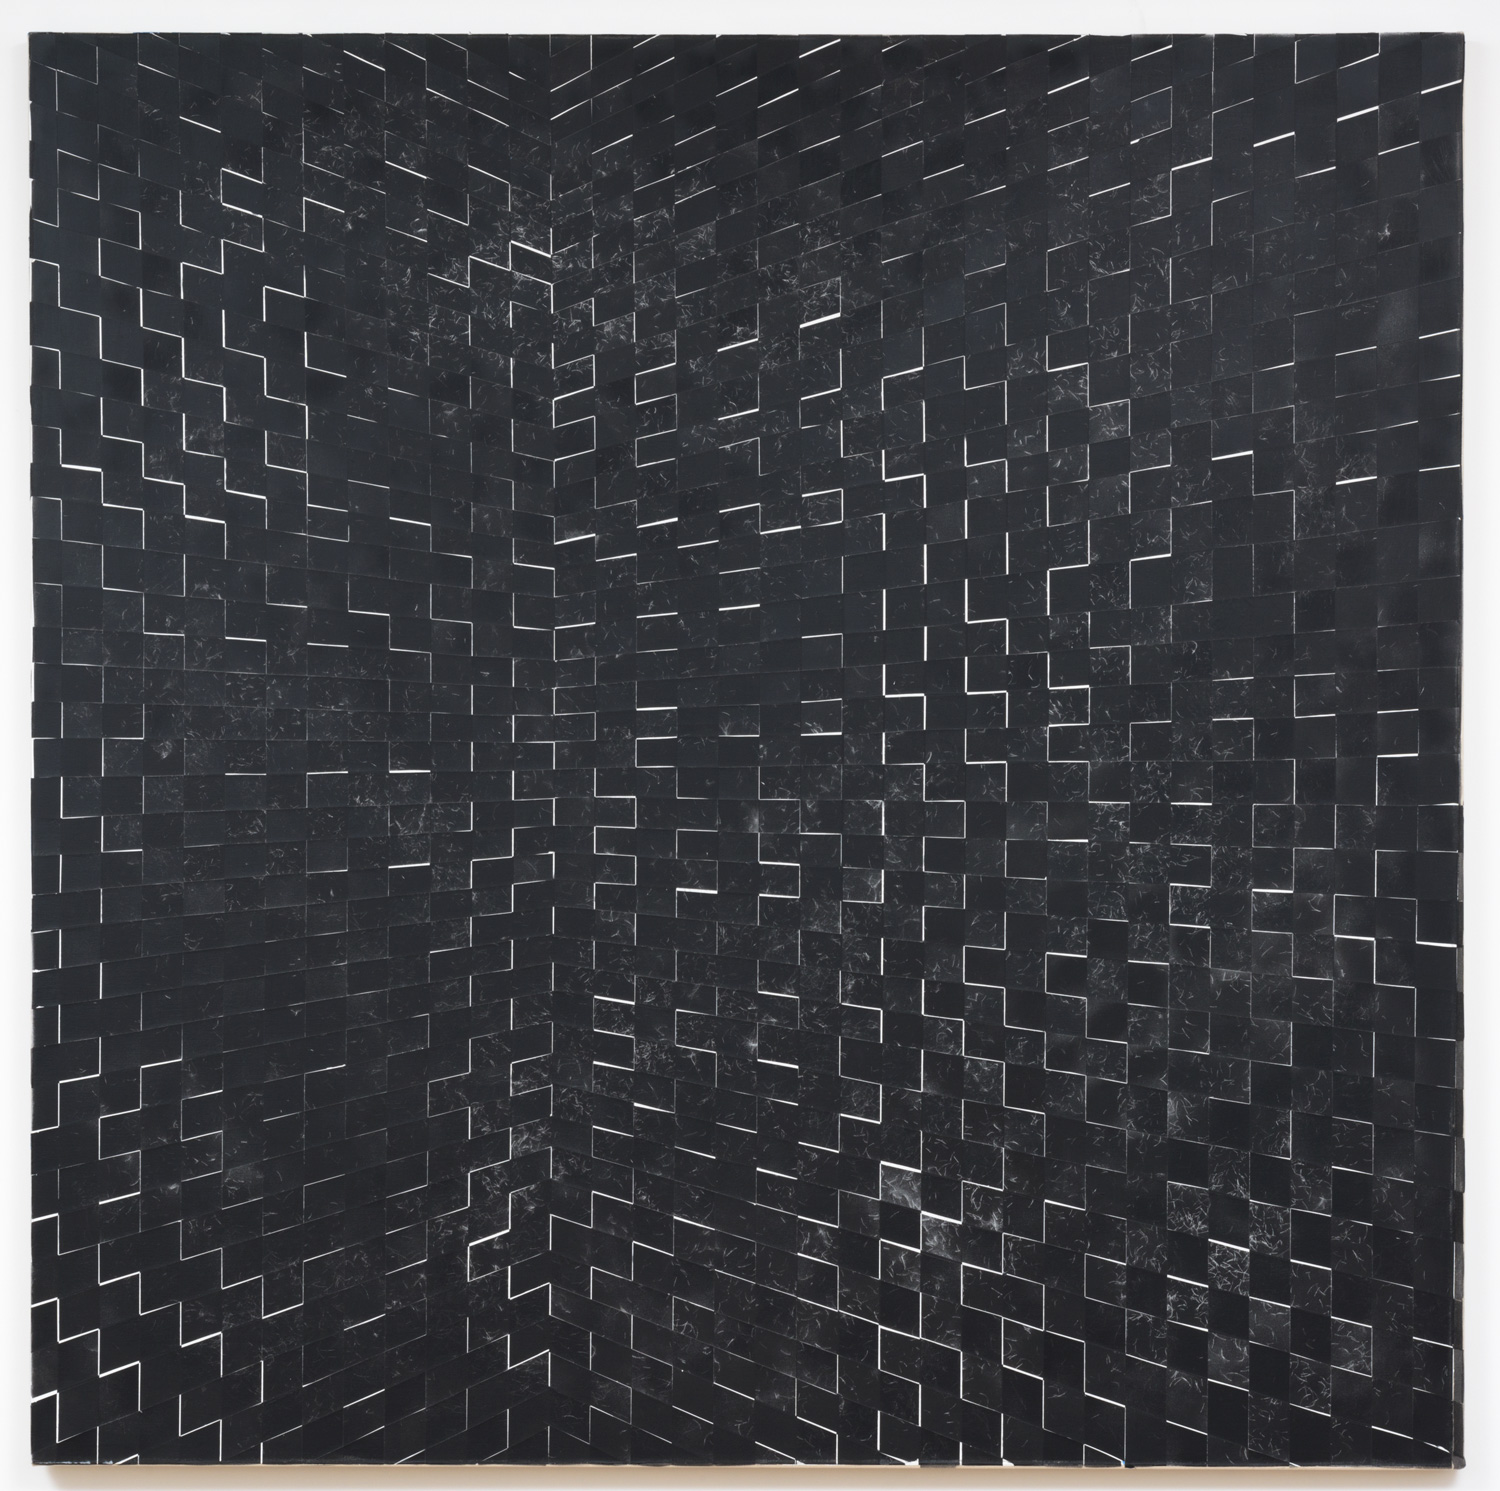 Danny Jauregui   Untitled 7  (2015) Enamel and human hair on canvas, 60 x 60in.